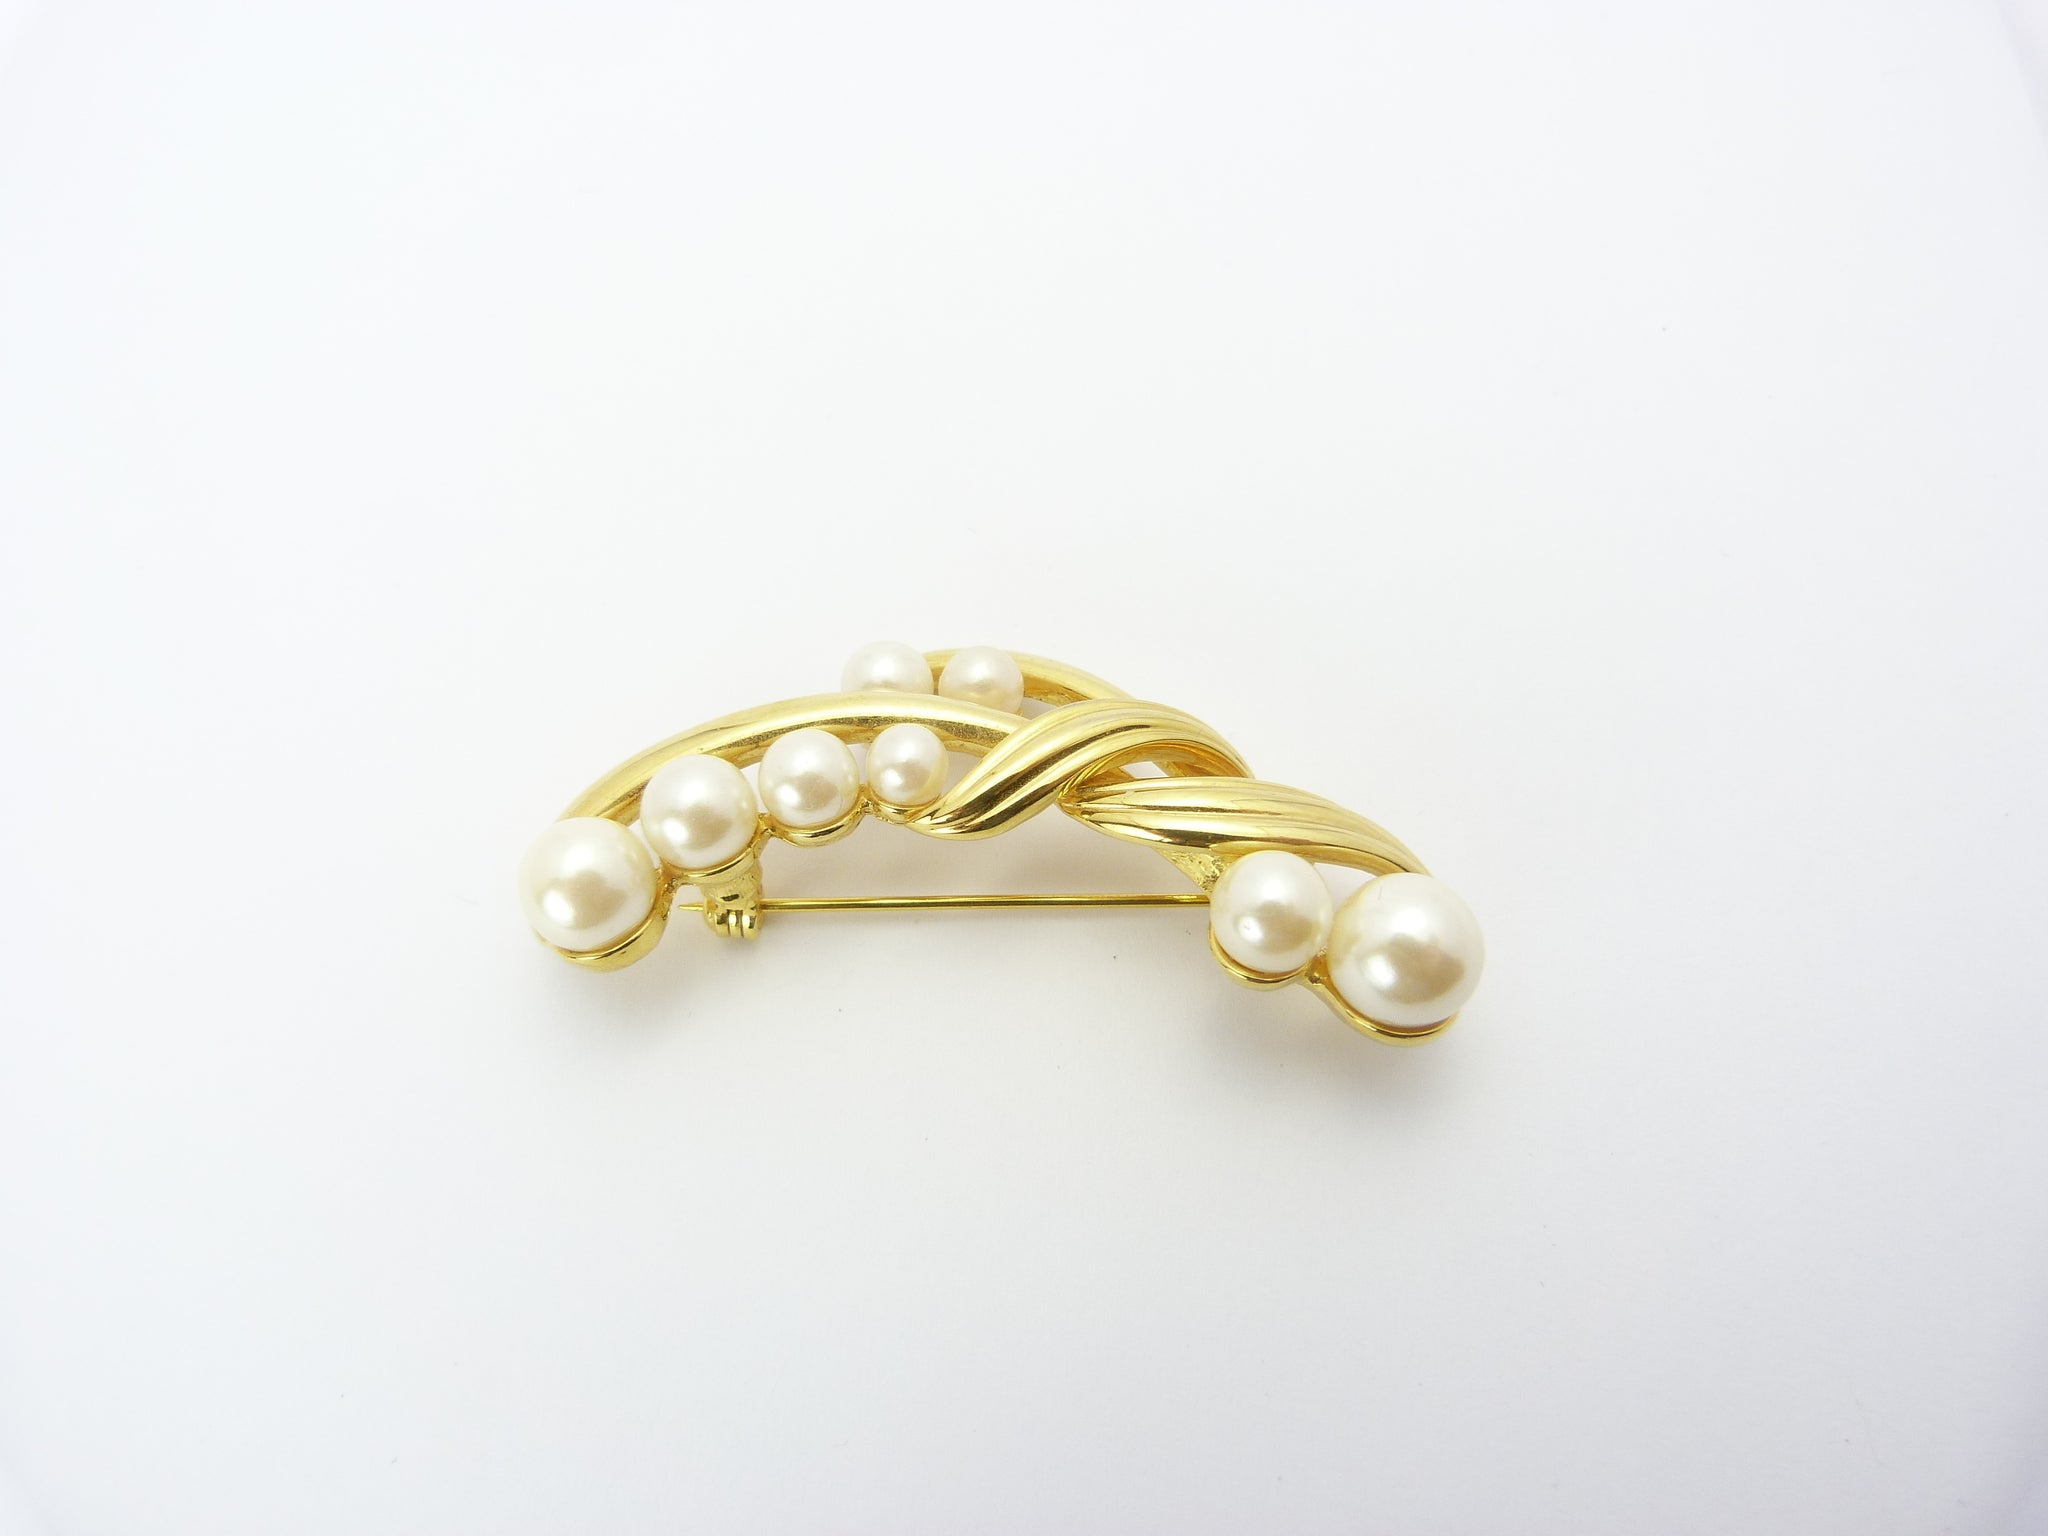 Vintage Gold Tone & Faux Pearl Brooch